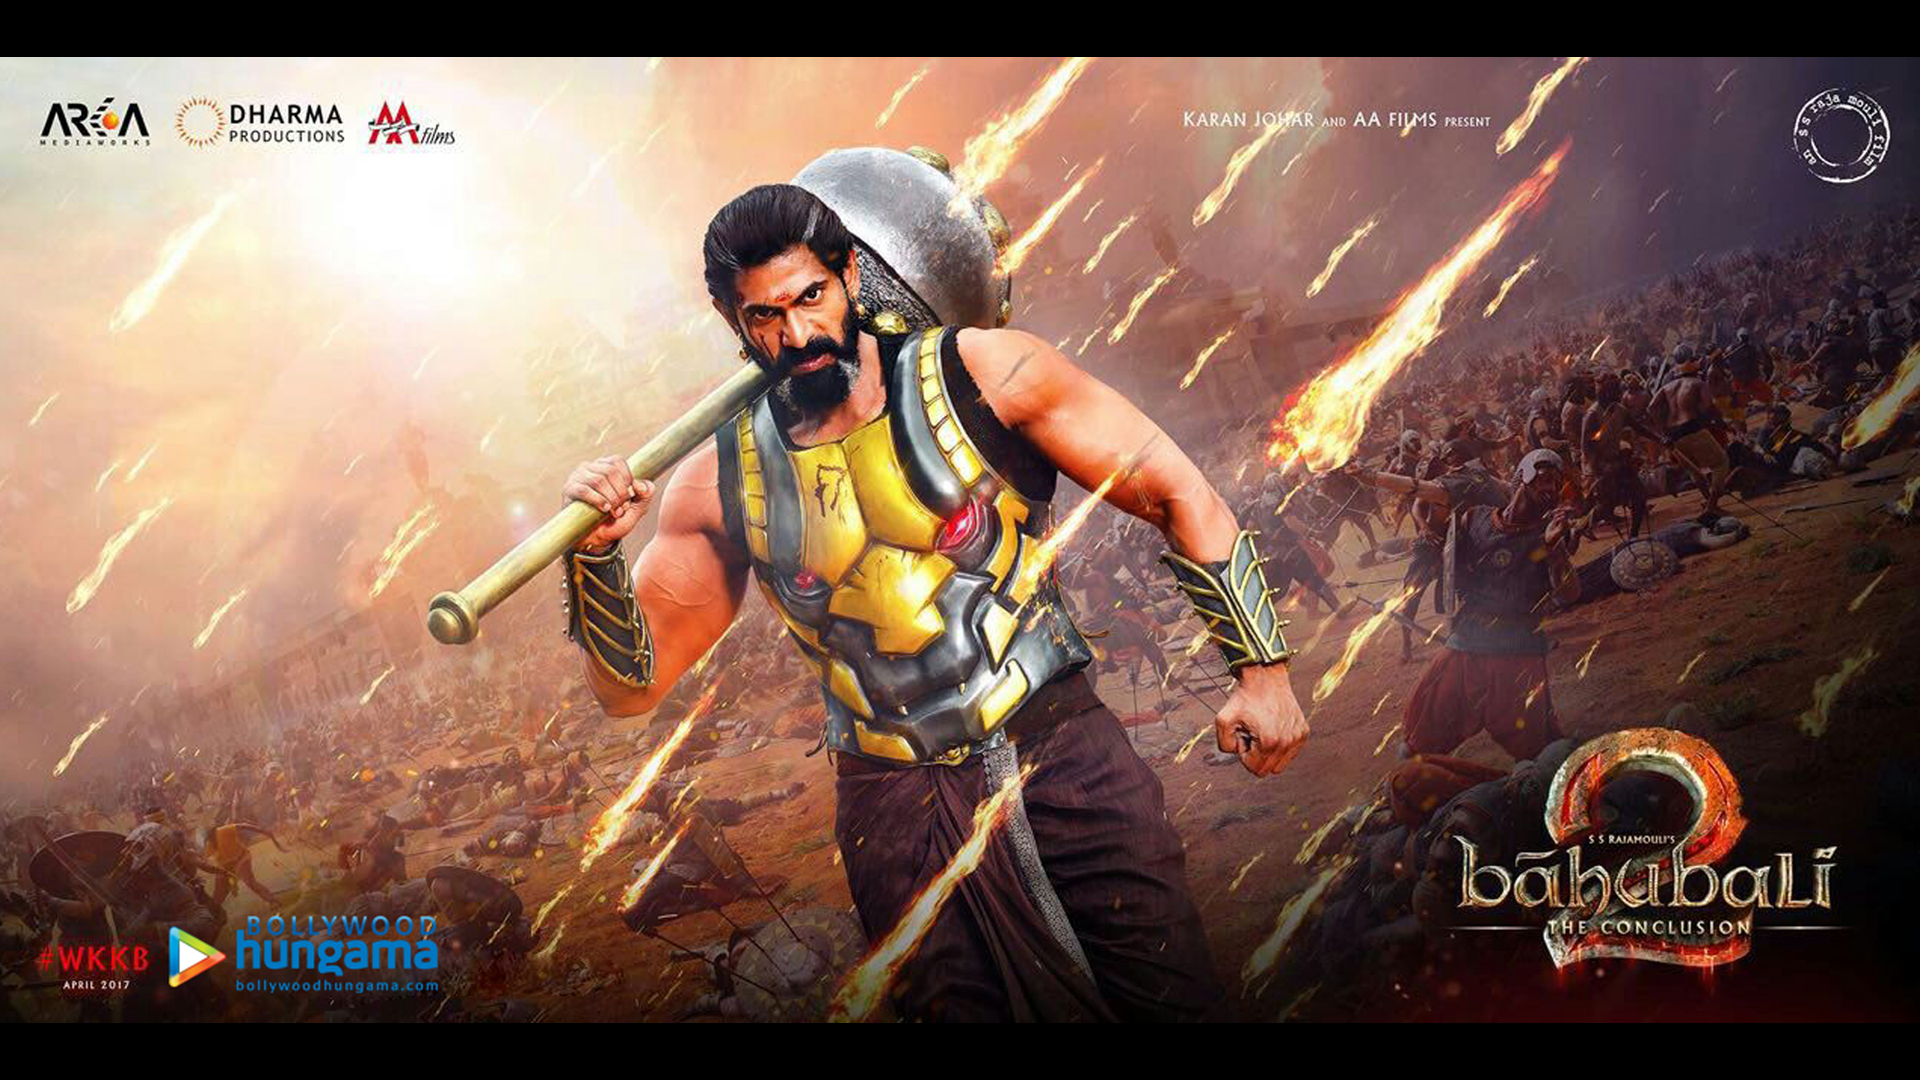 Wallpaper download bahubali - 1920 X 1080 Set As Wallpaper